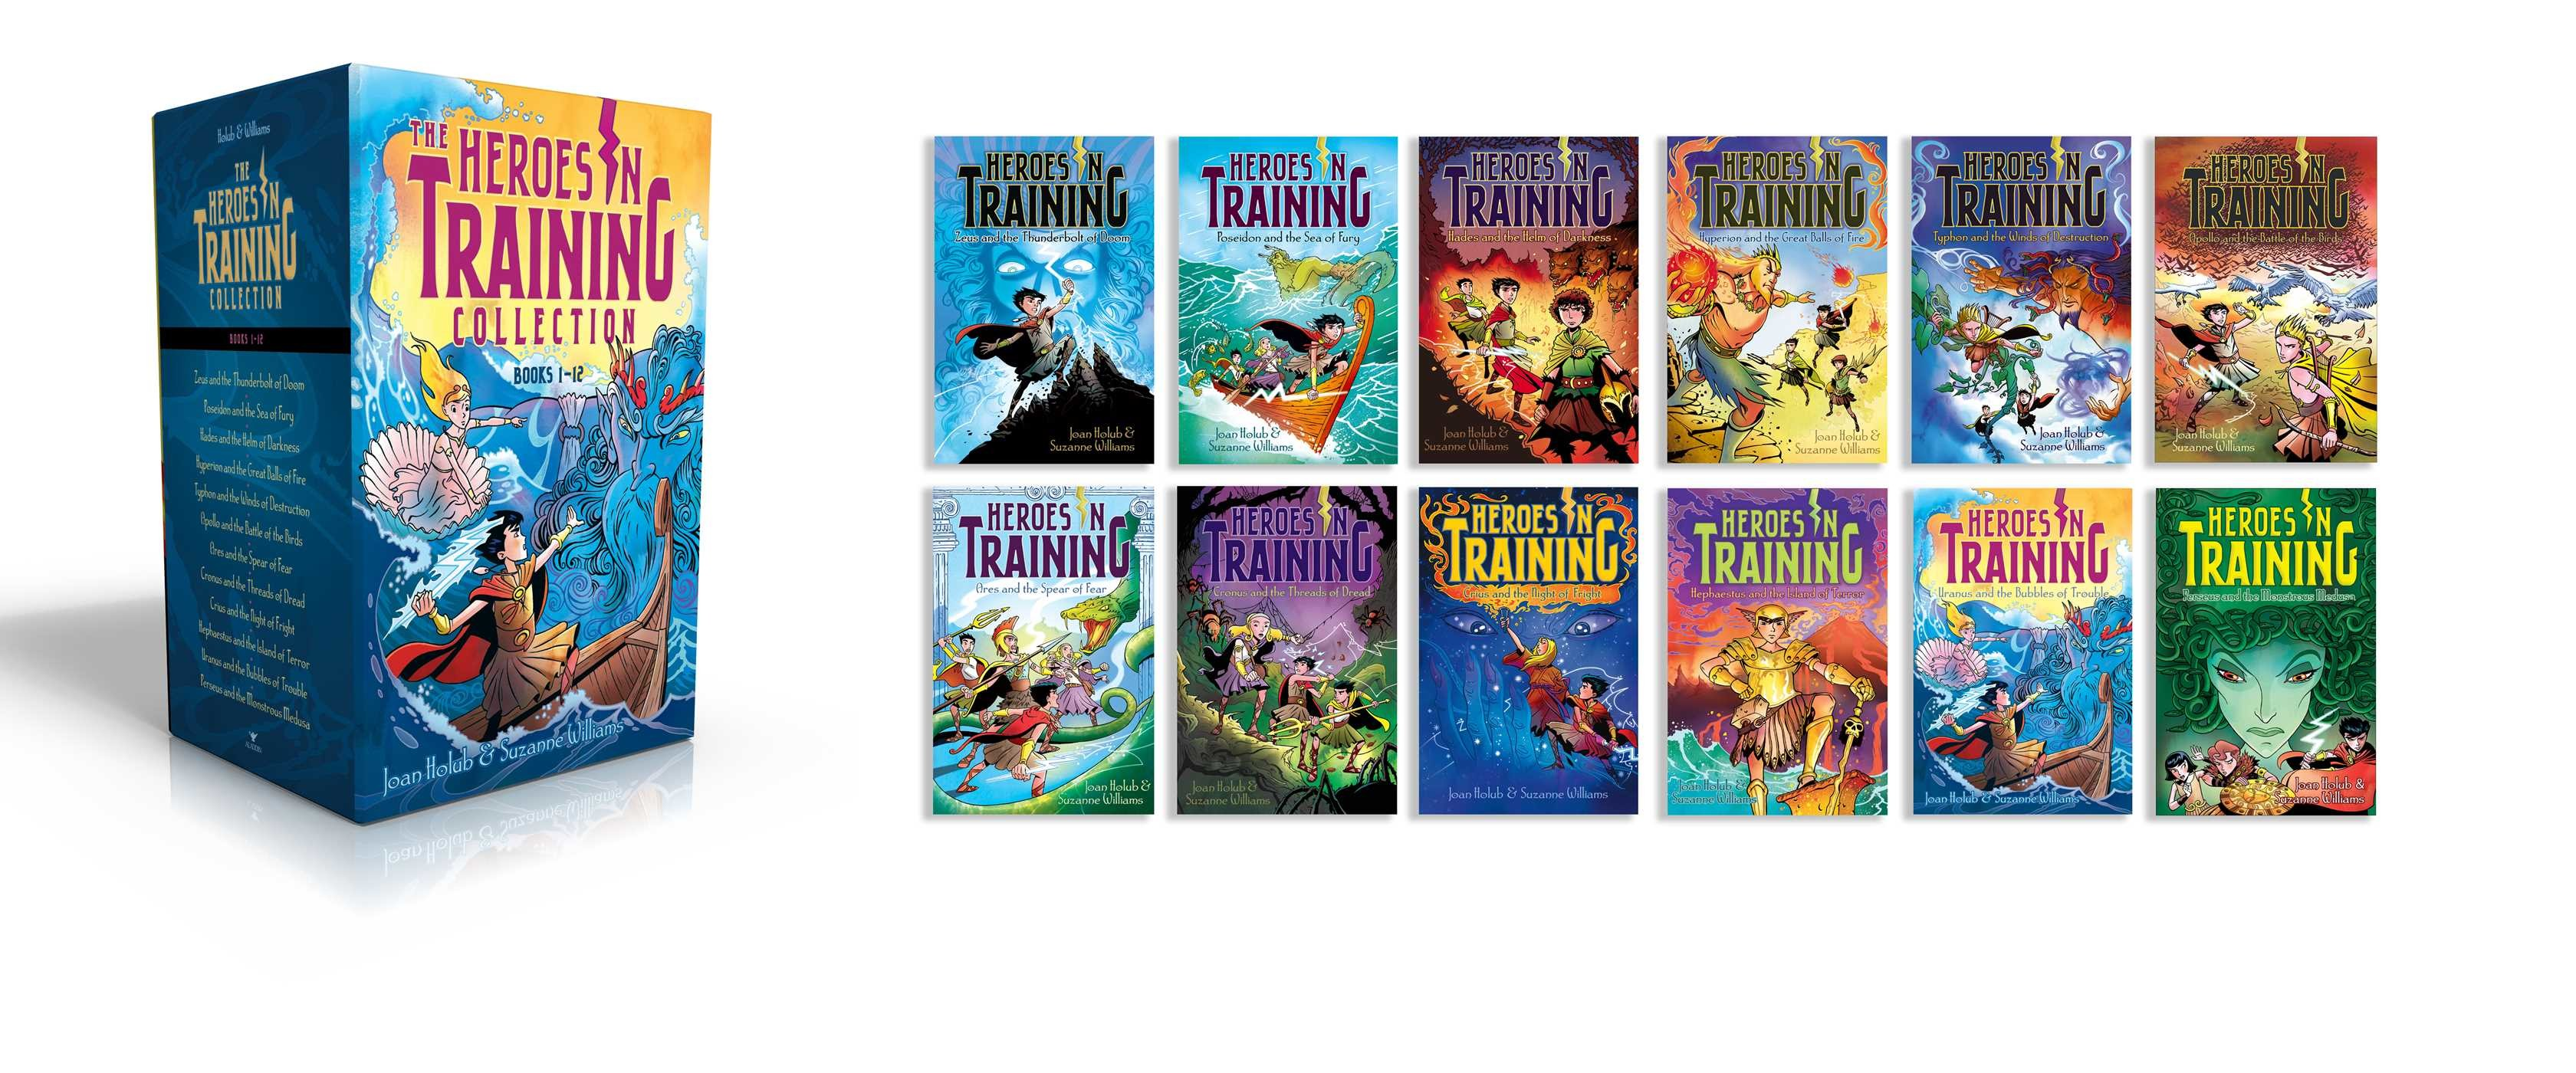 Heroes in training olympian collection books 1 12 9781481496988.in01